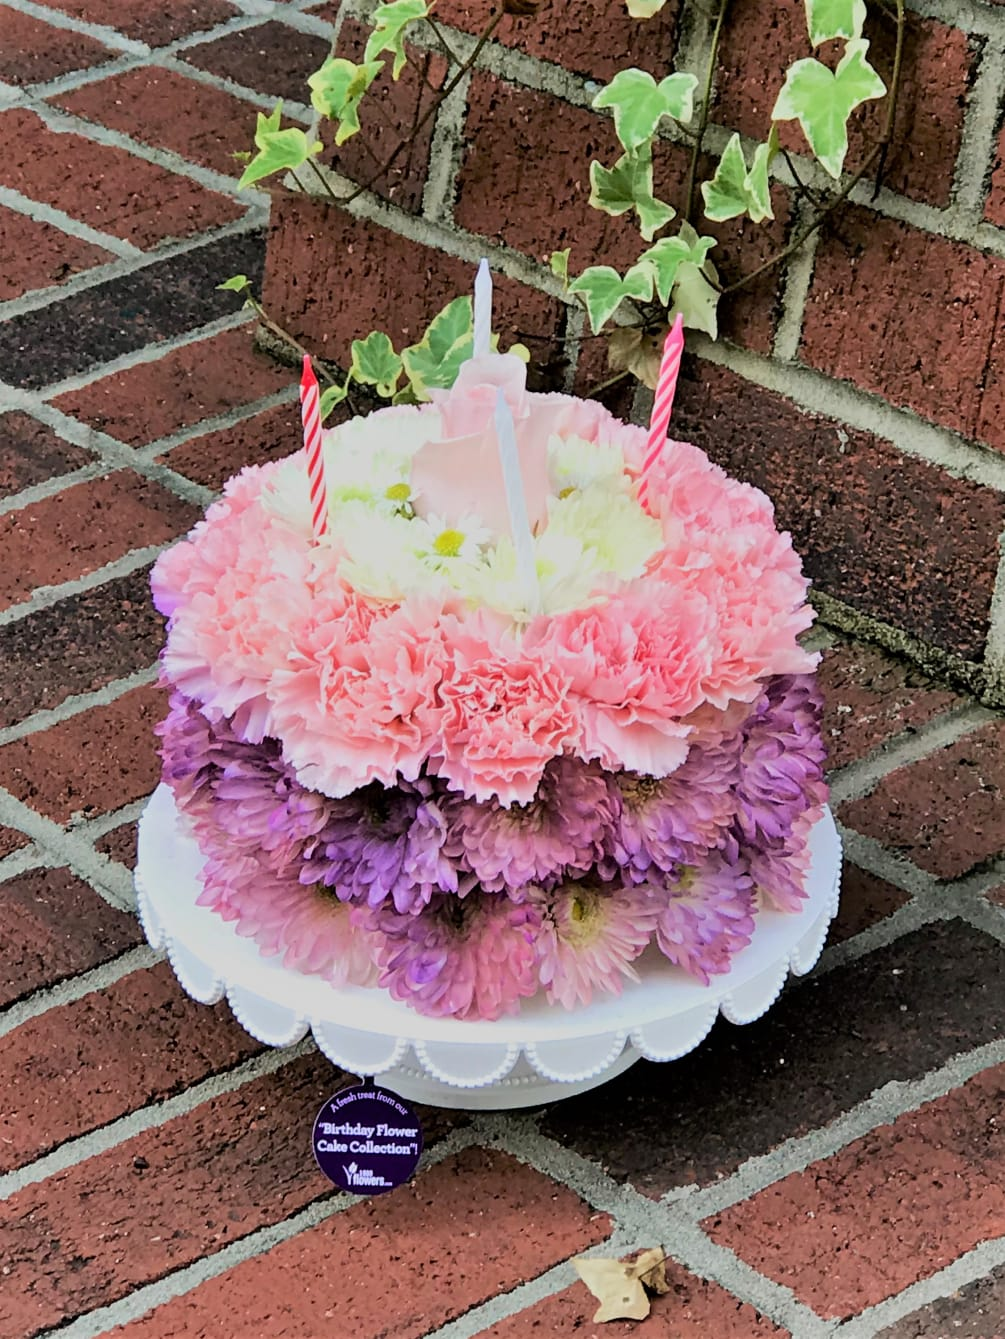 Crafted From Fresh Pastel Flowers These Below Cakes As Pictured Are Made